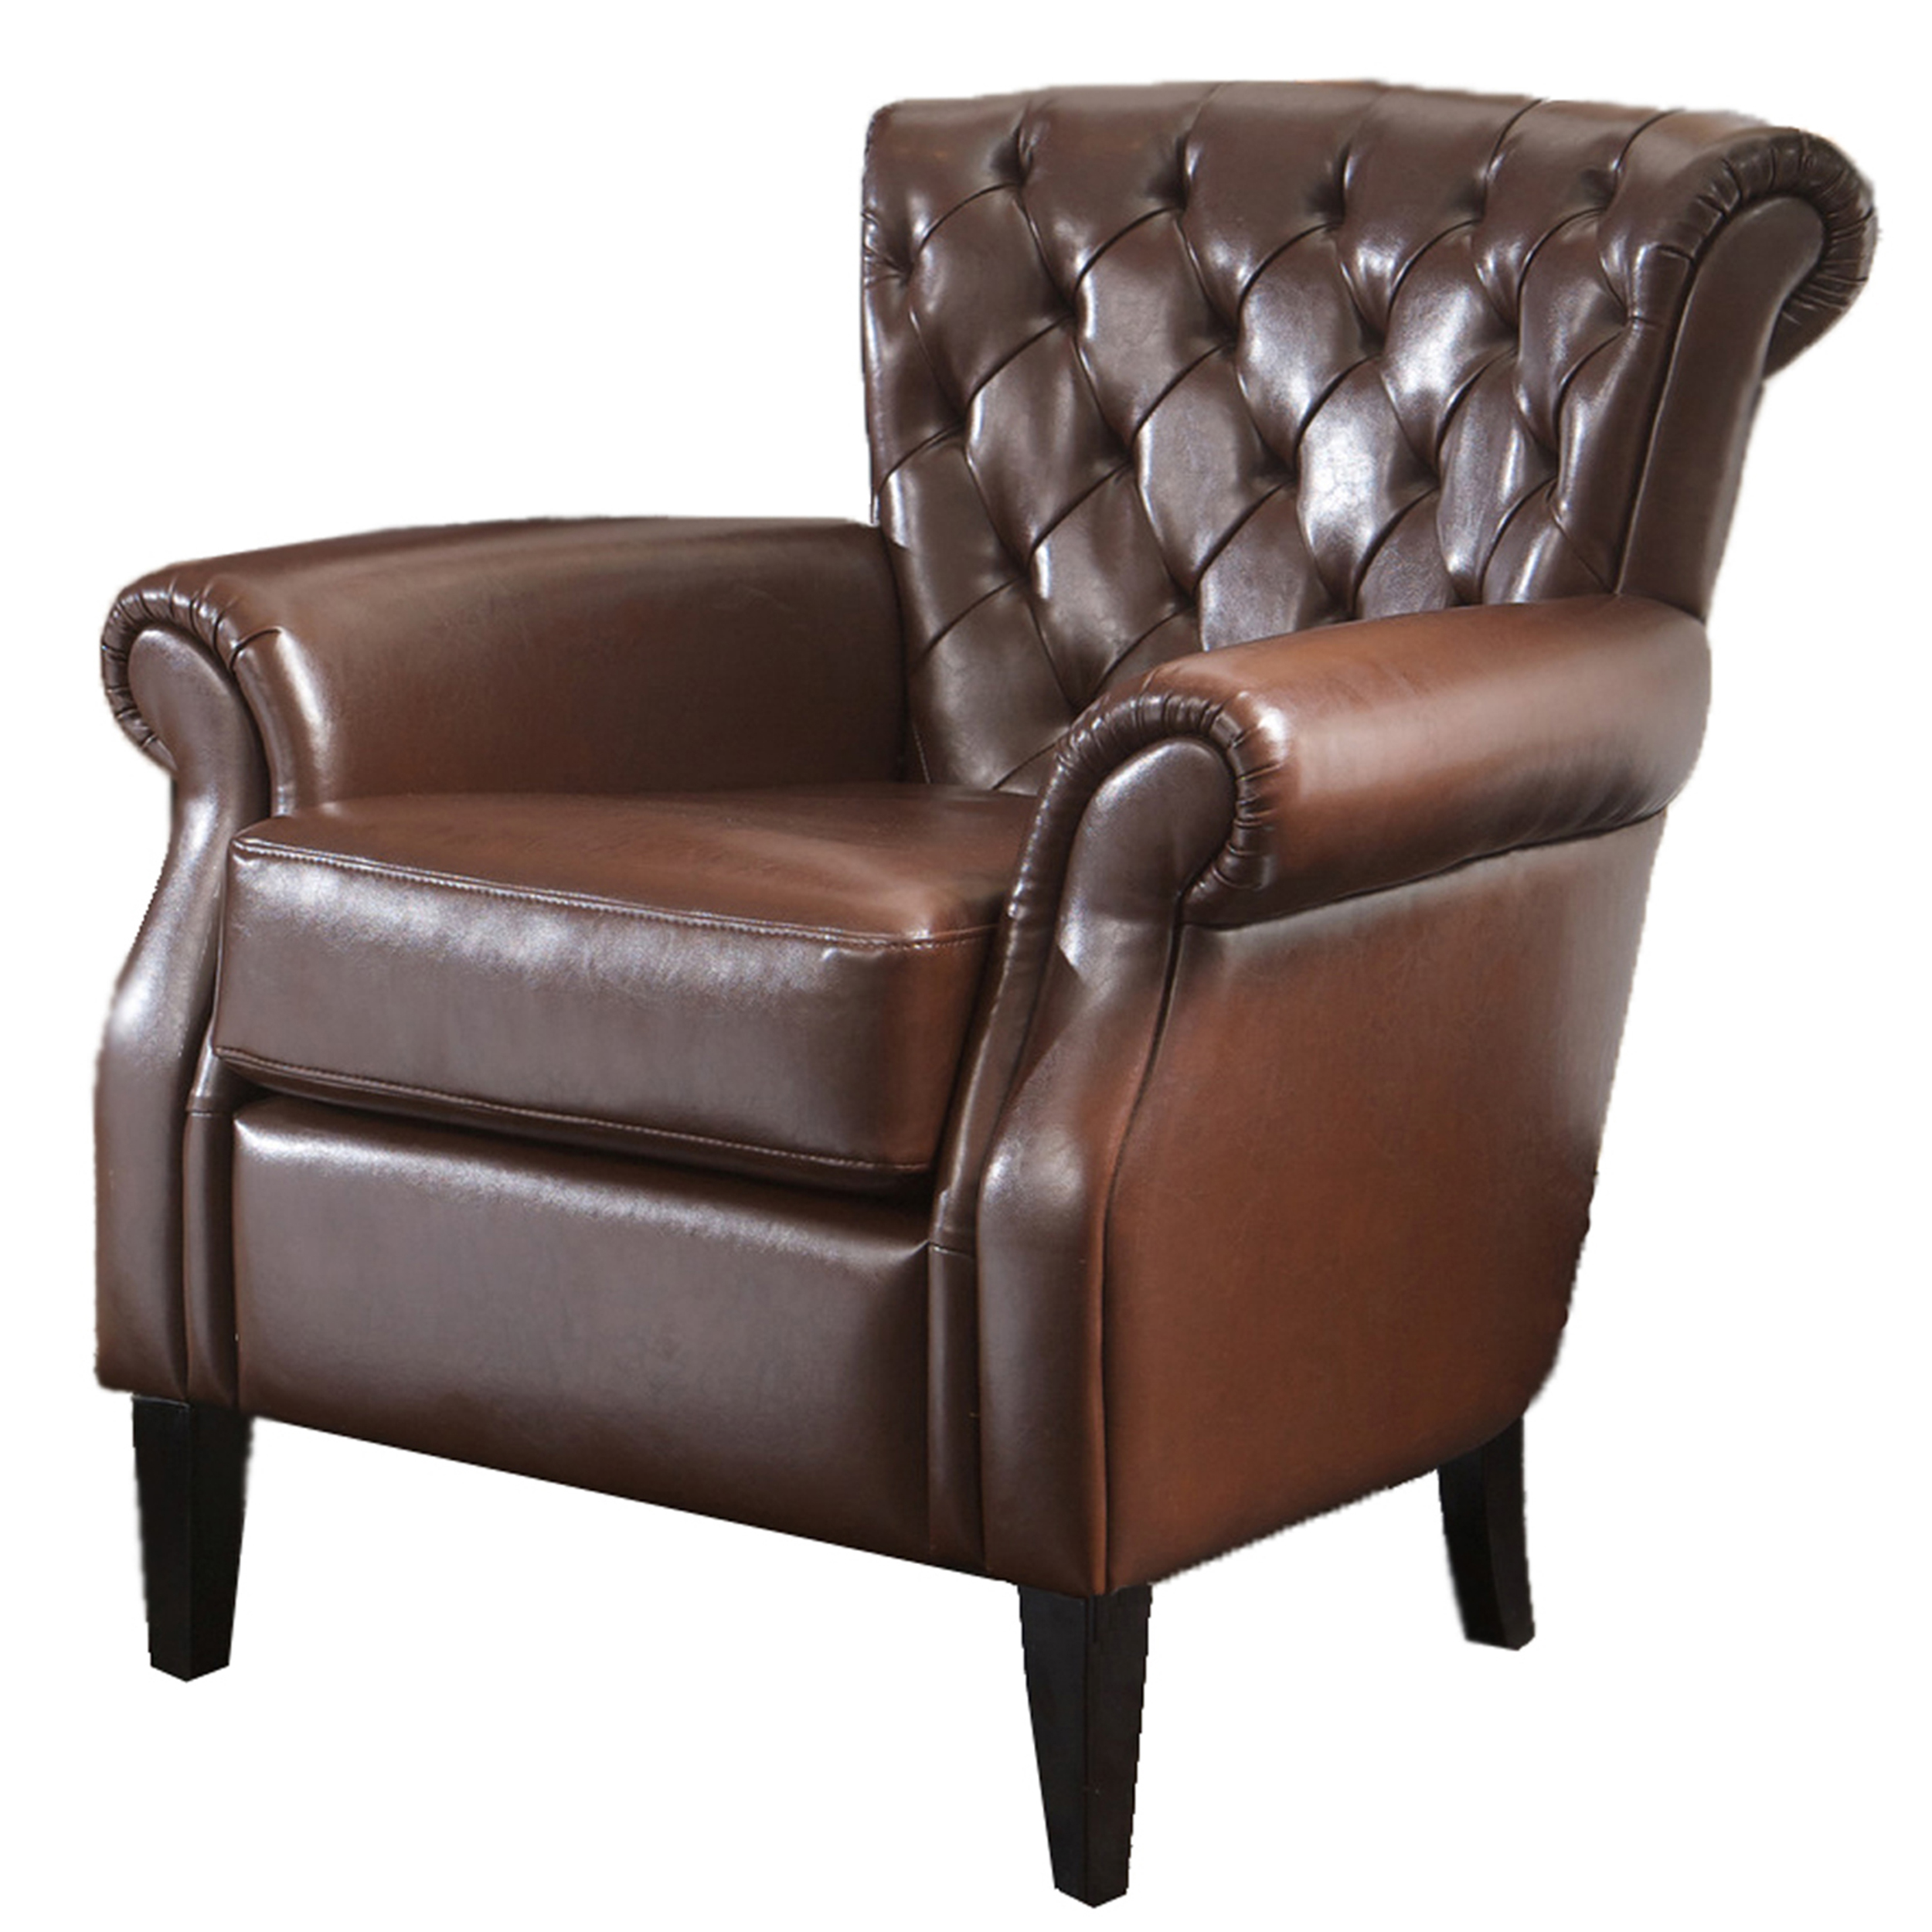 Dunn Brown Tufted Bonded Leather Club Chair